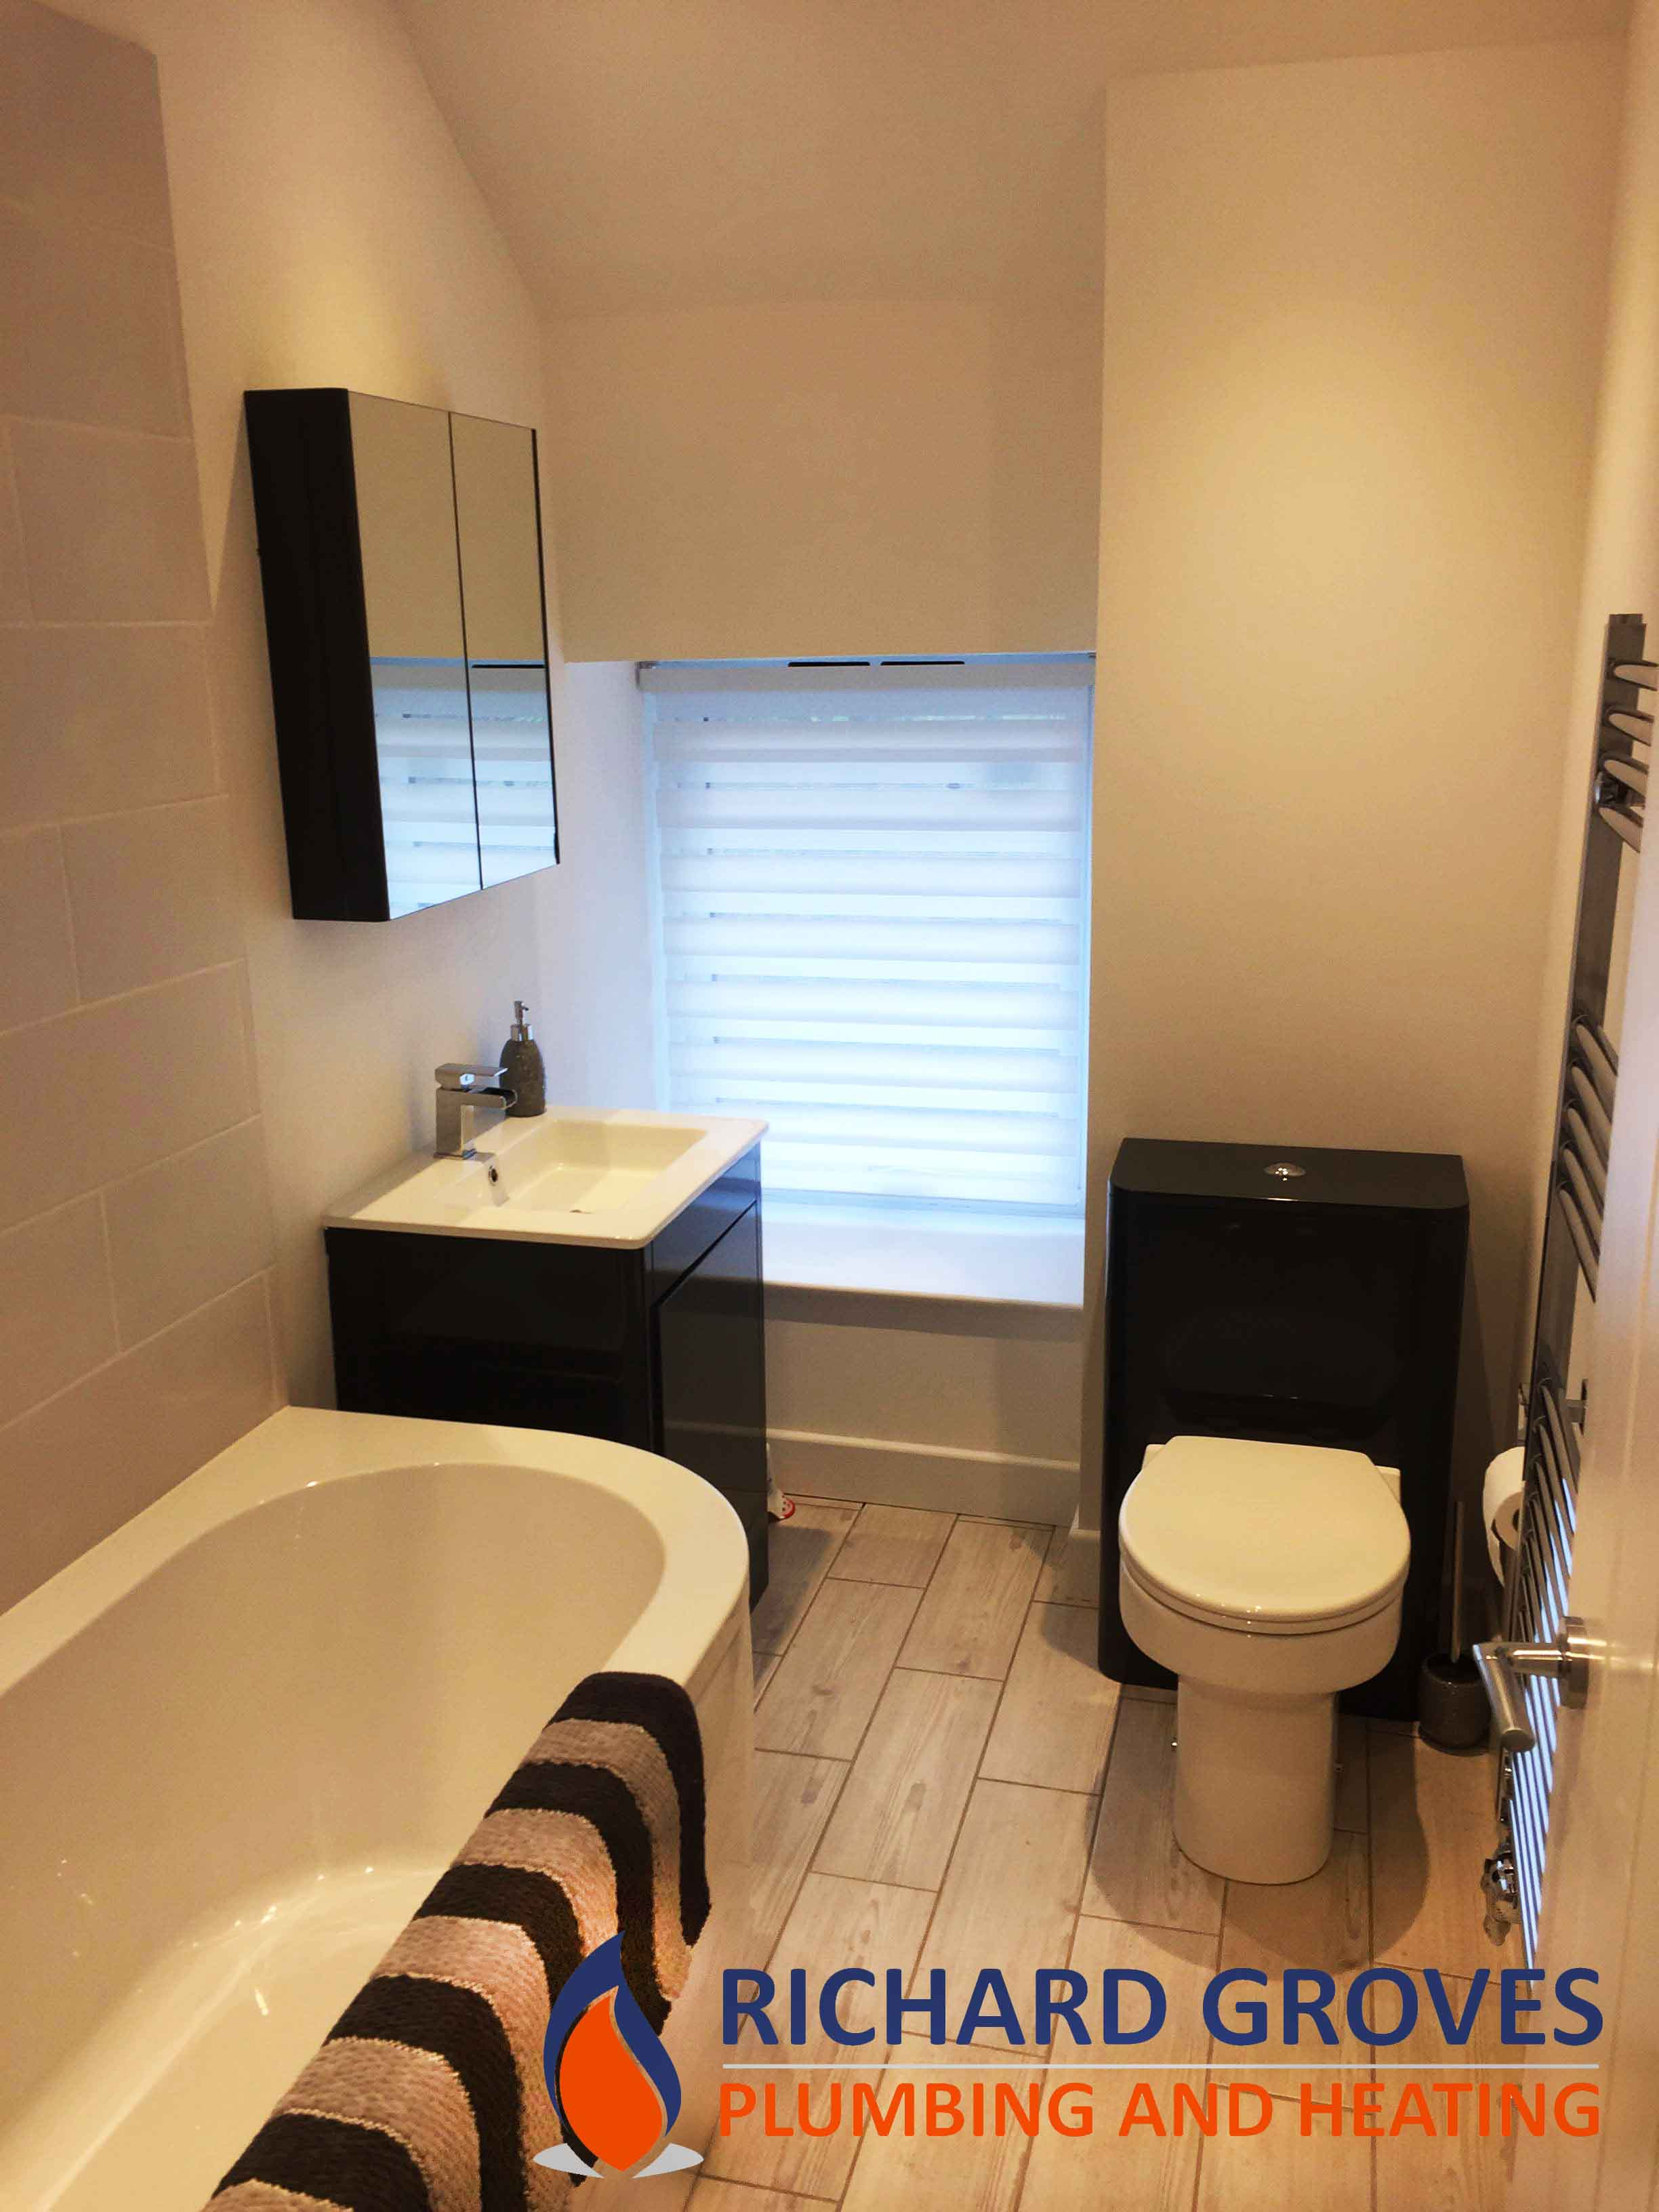 A selection of plumber images in Newquay